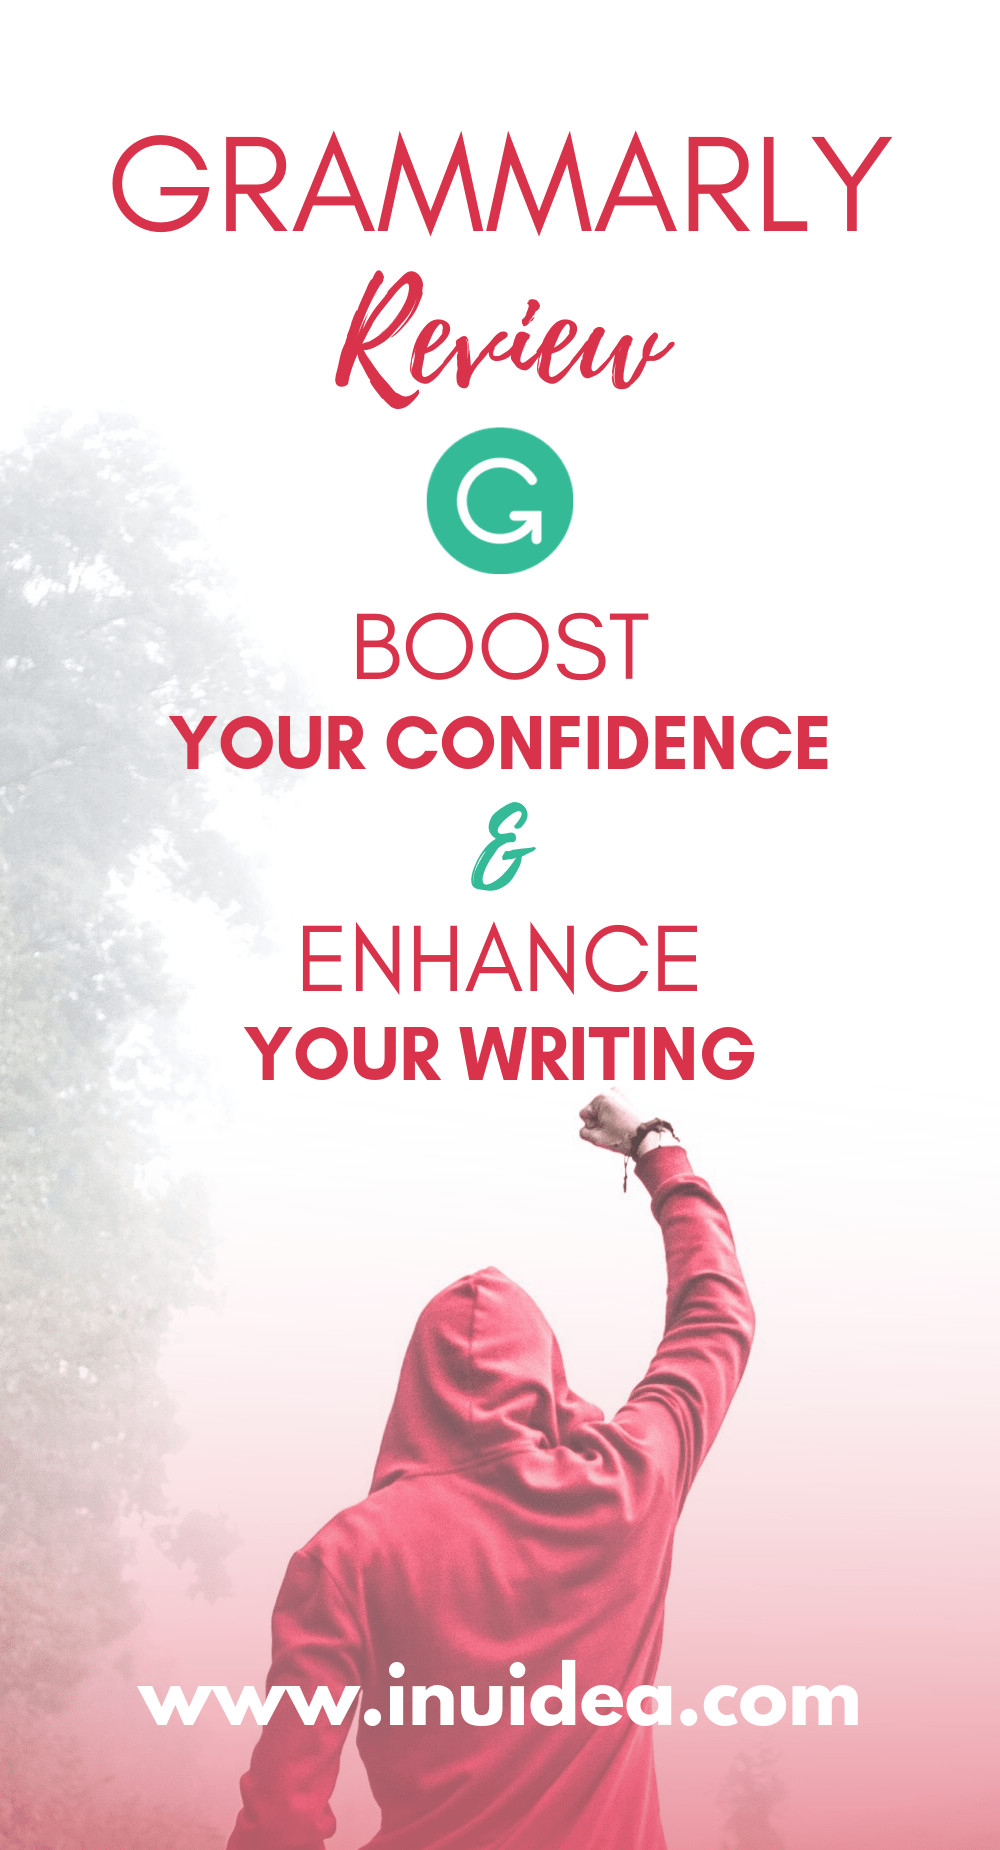 Proofreading Software Grammarly Coupon Codes Online 2020